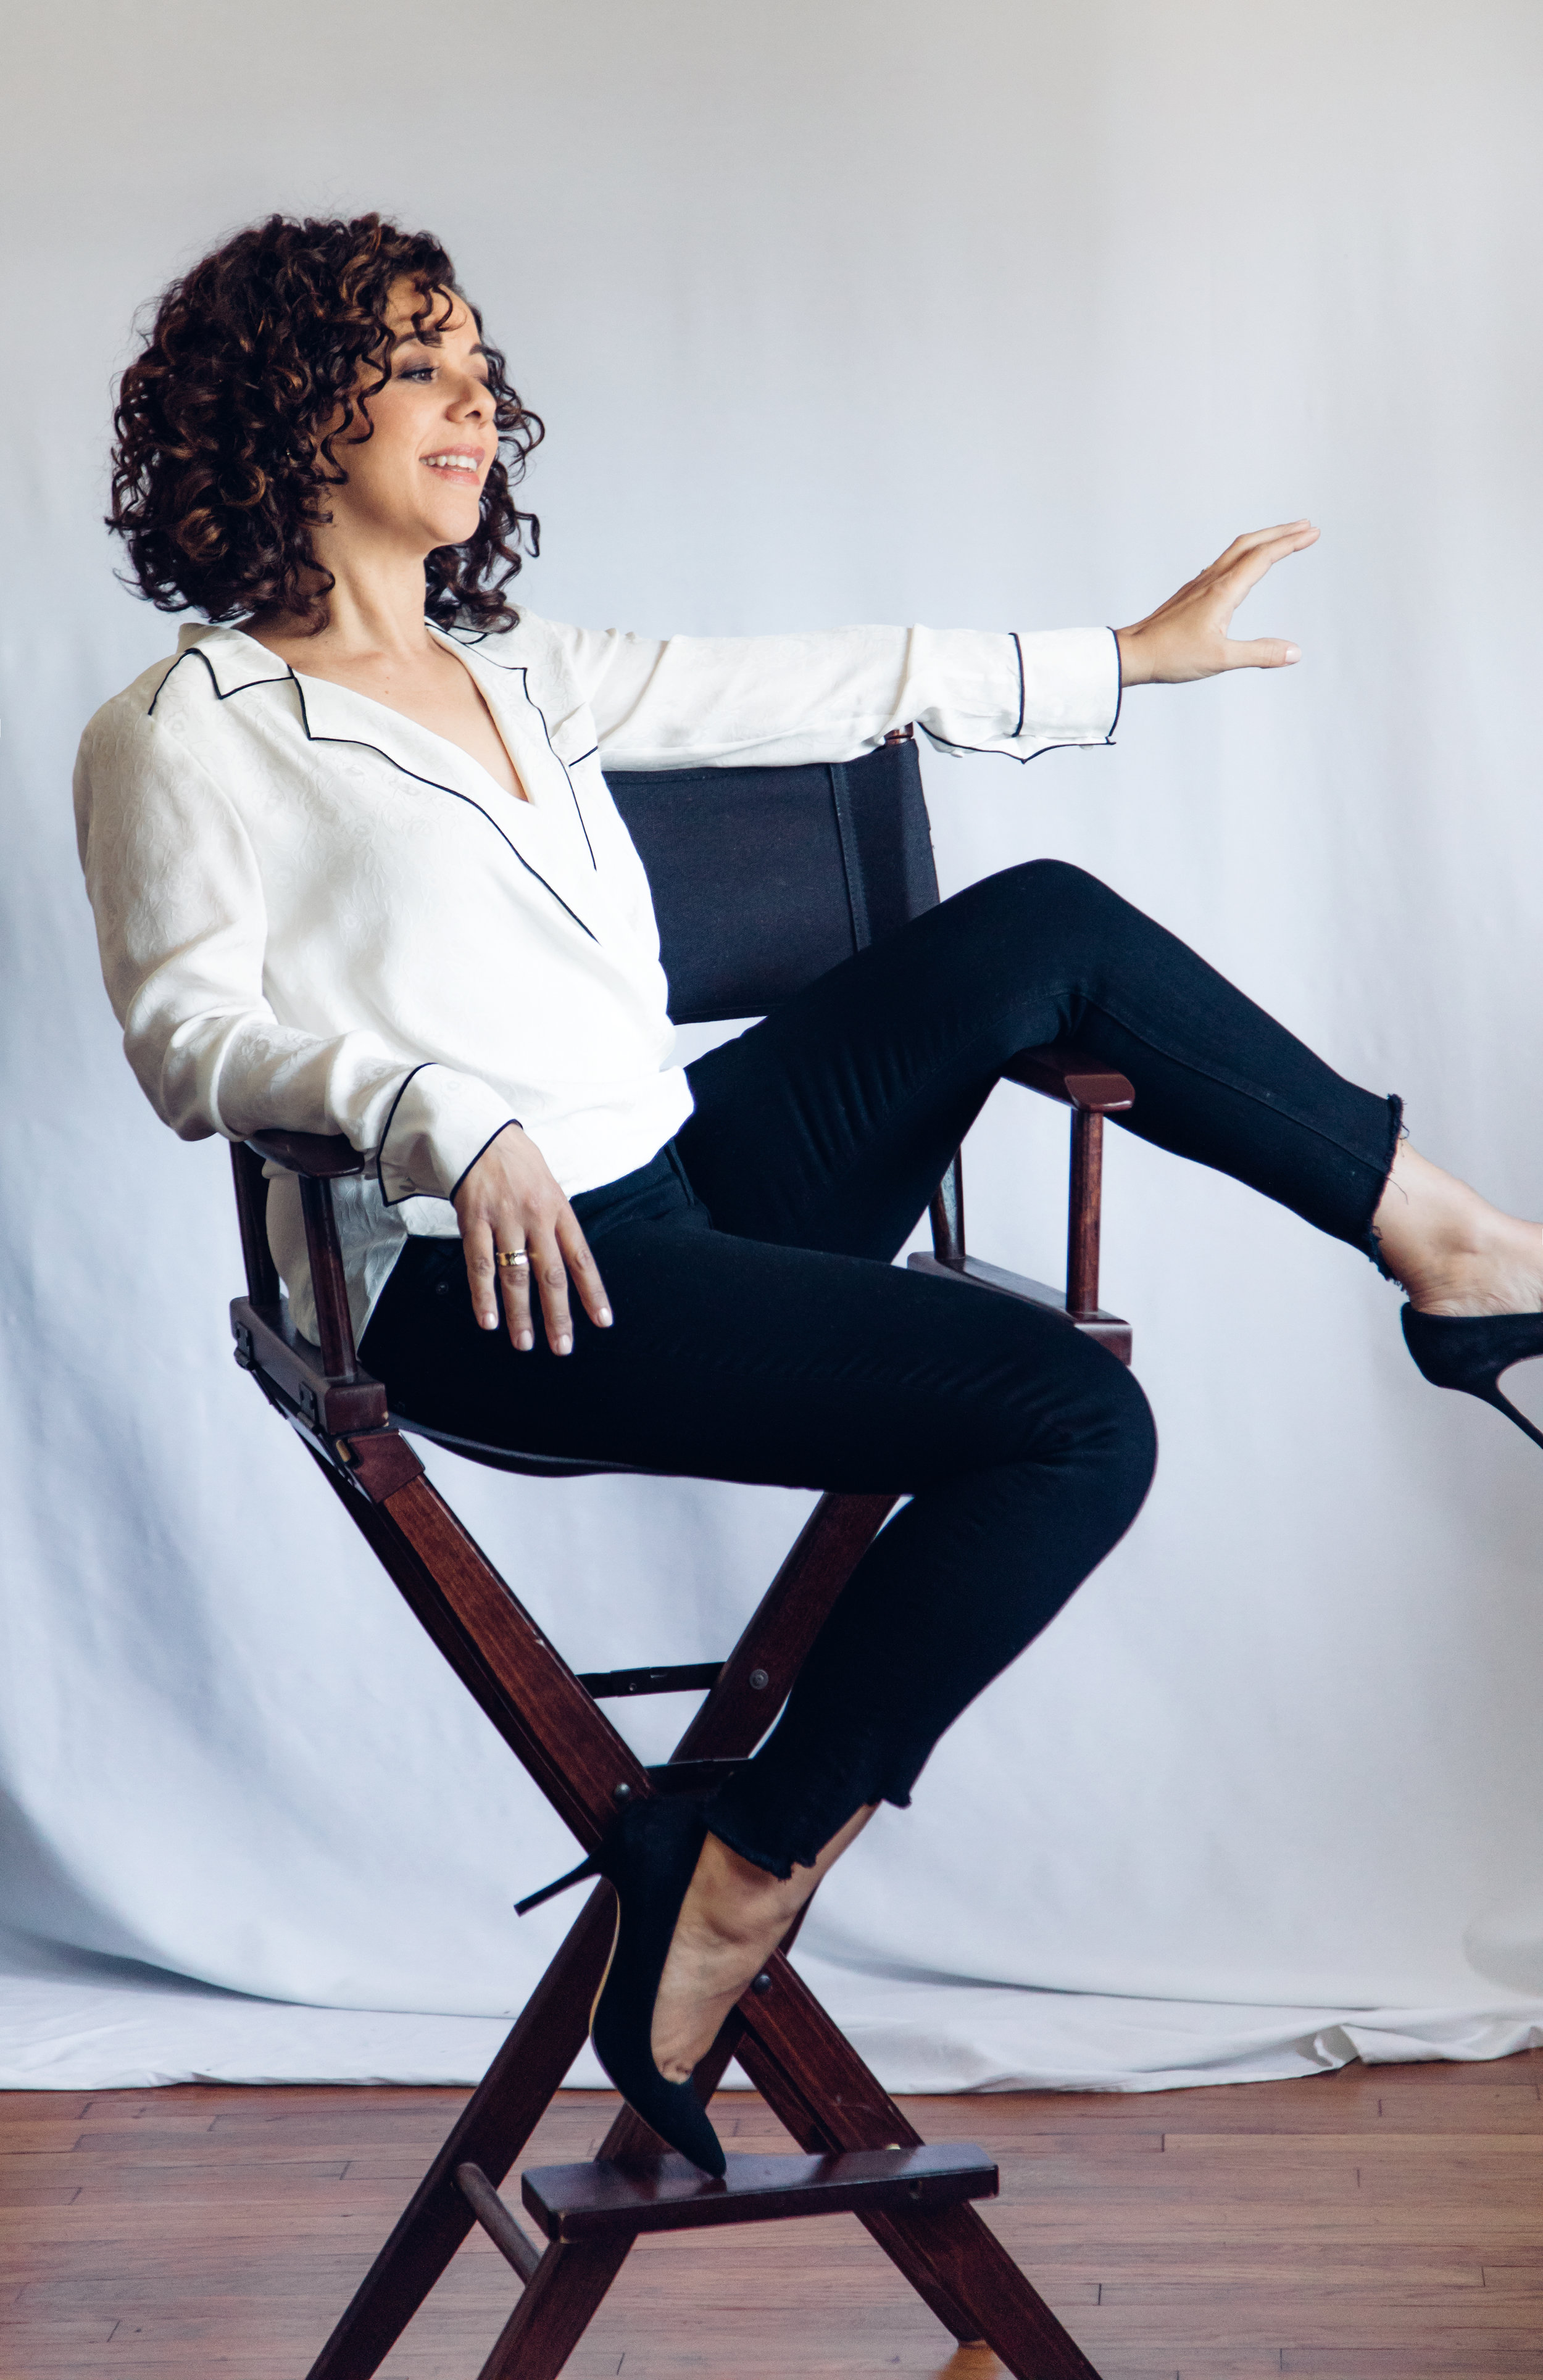 Luciana Souza photographed by Anna Webber